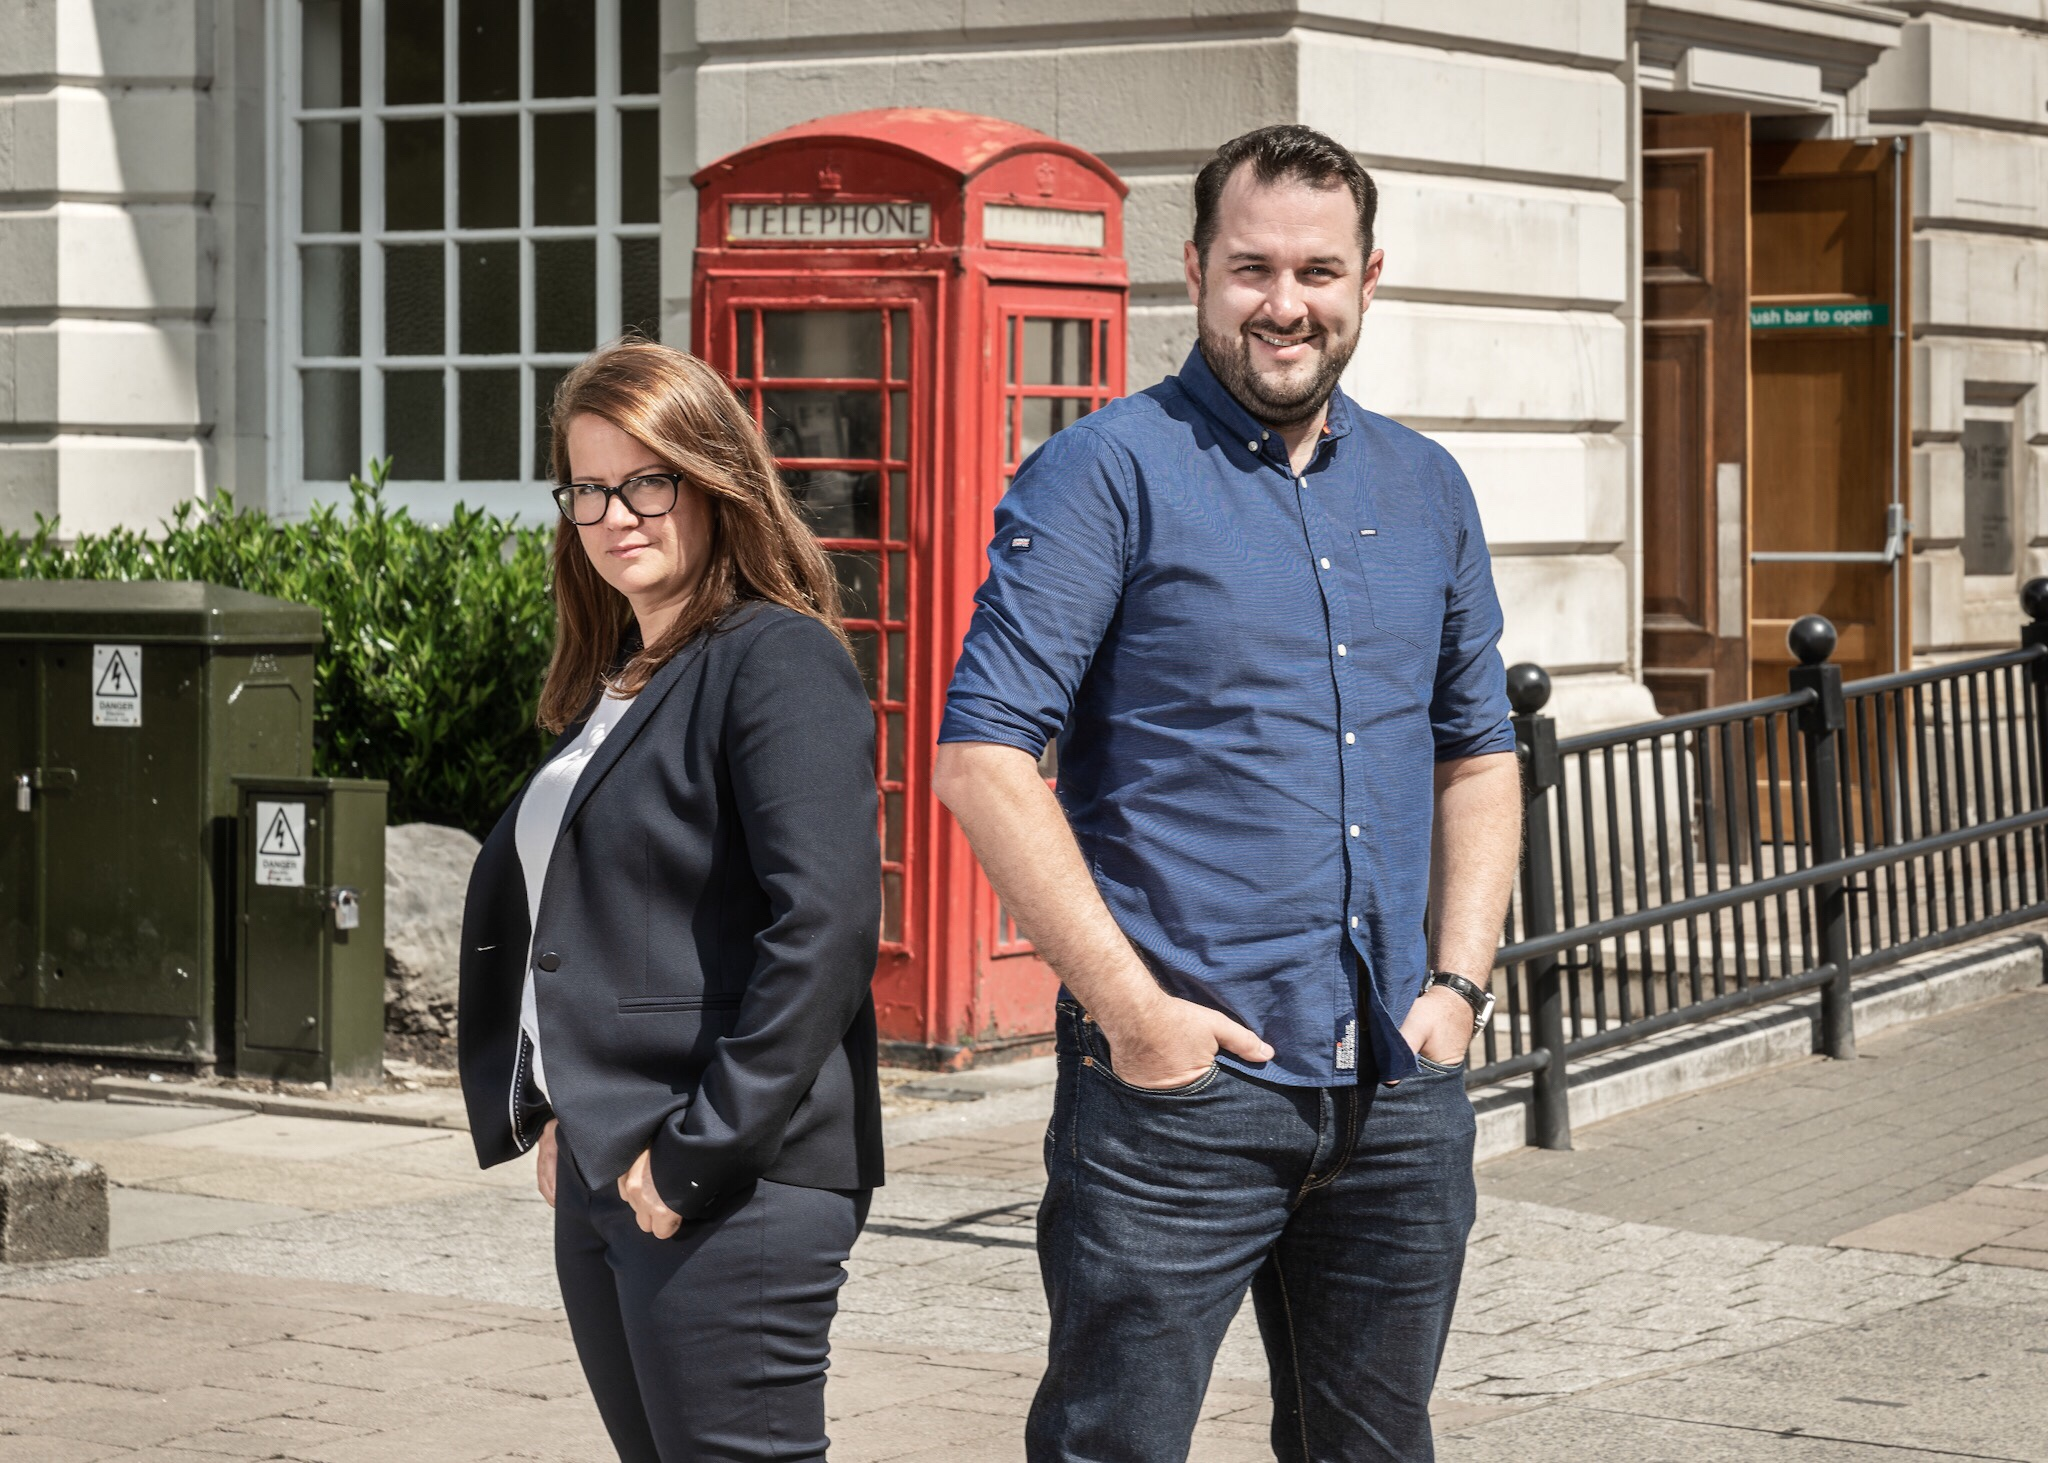 Latest News From Work!: By Factory, Digital Agency In Manchester